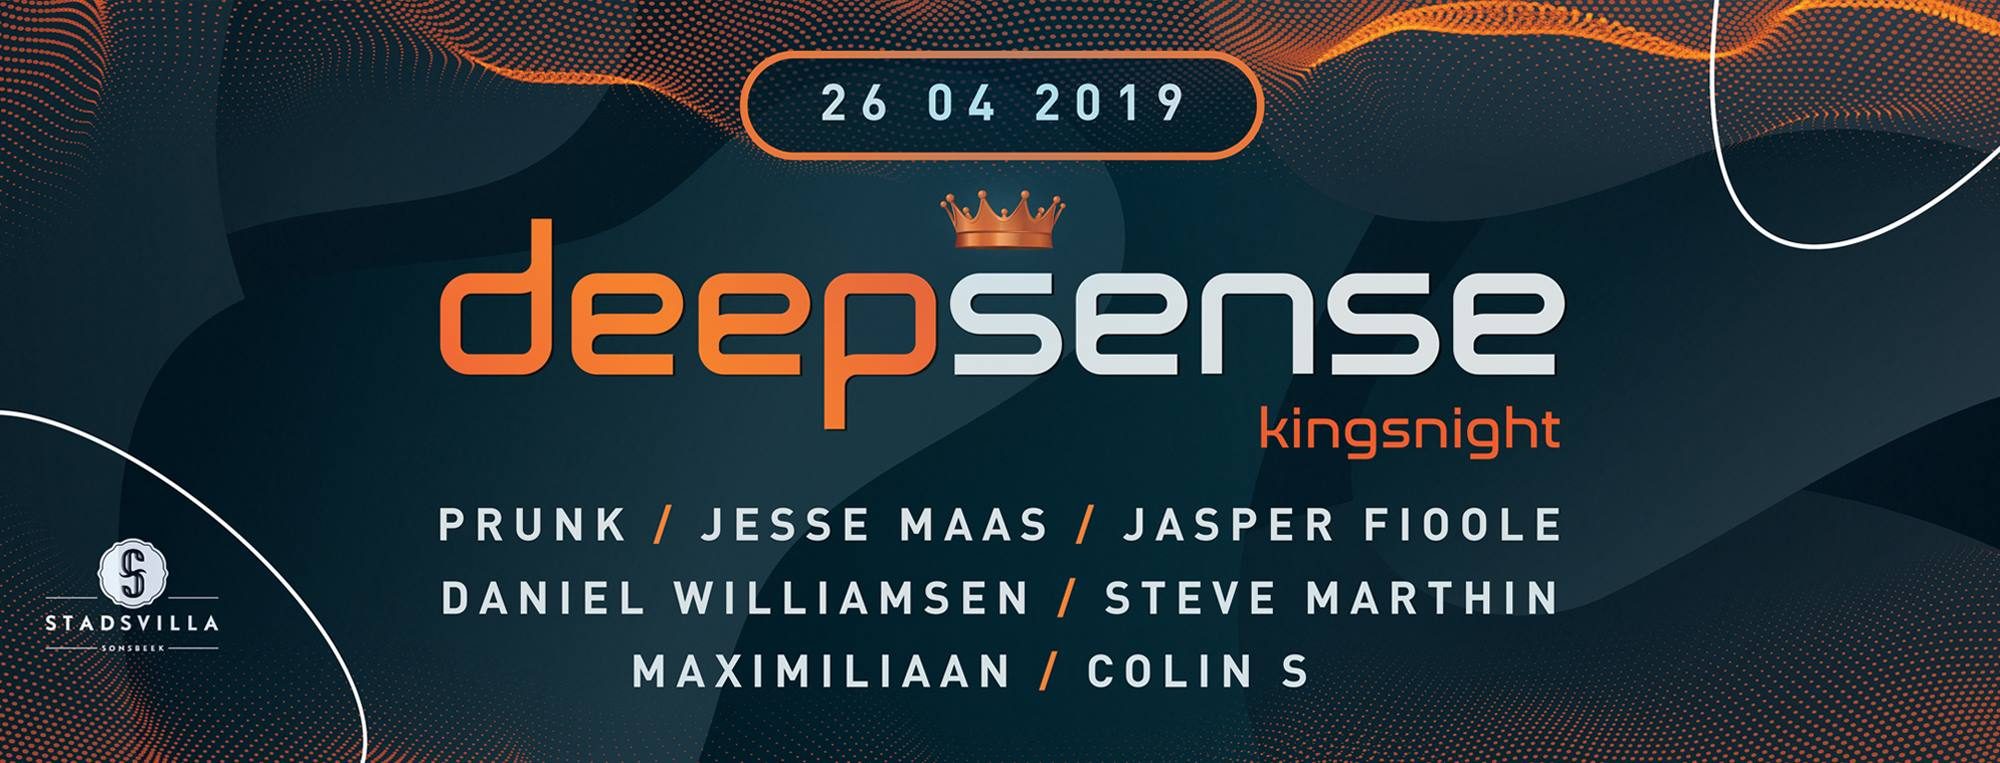 Deepsense kingsnight